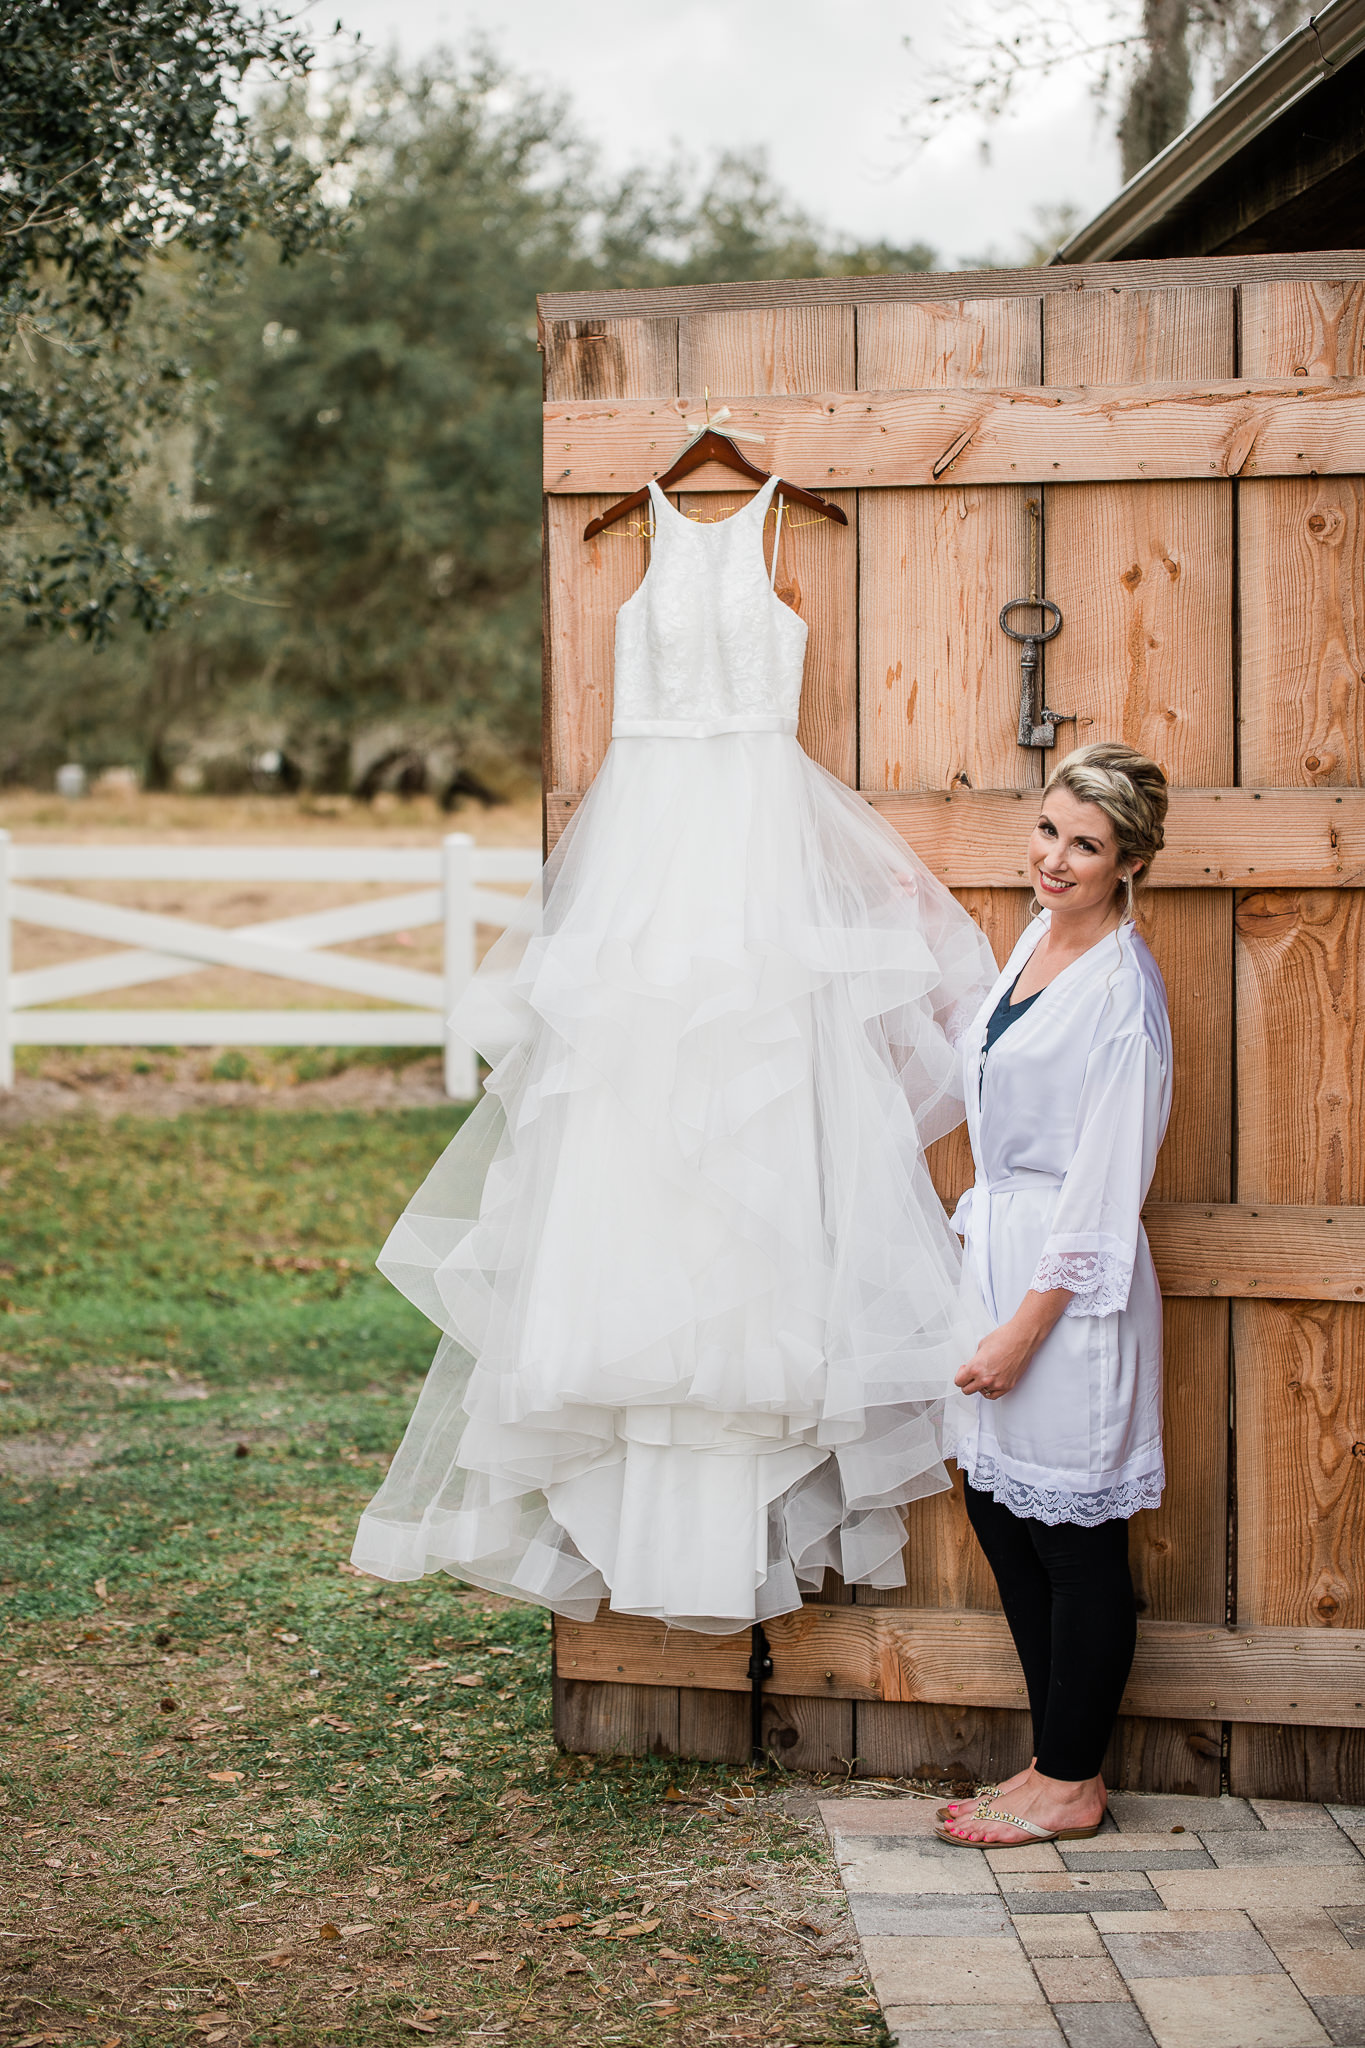 TAMPA_WEDDING_PHOTOGRAPHER_DRMZ_SPARROW_BARN_2.jpg